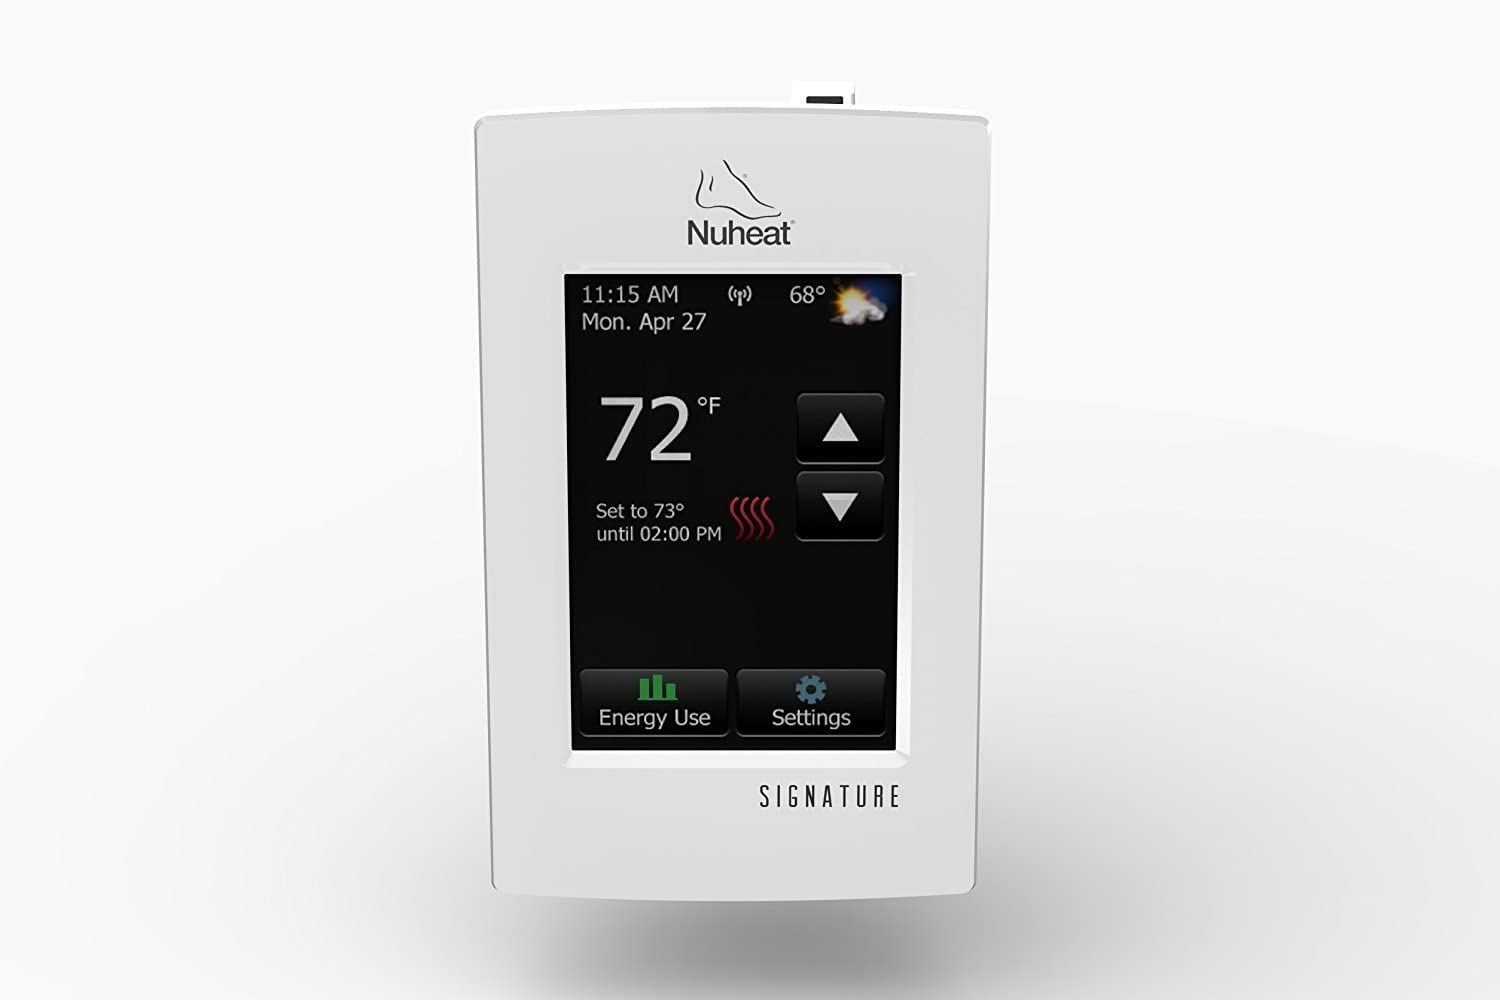 NUHEAT AC0055 SIGNATURE WiFi Touchscreen Programmable Dual-Voltage Thermostat by Nuheat